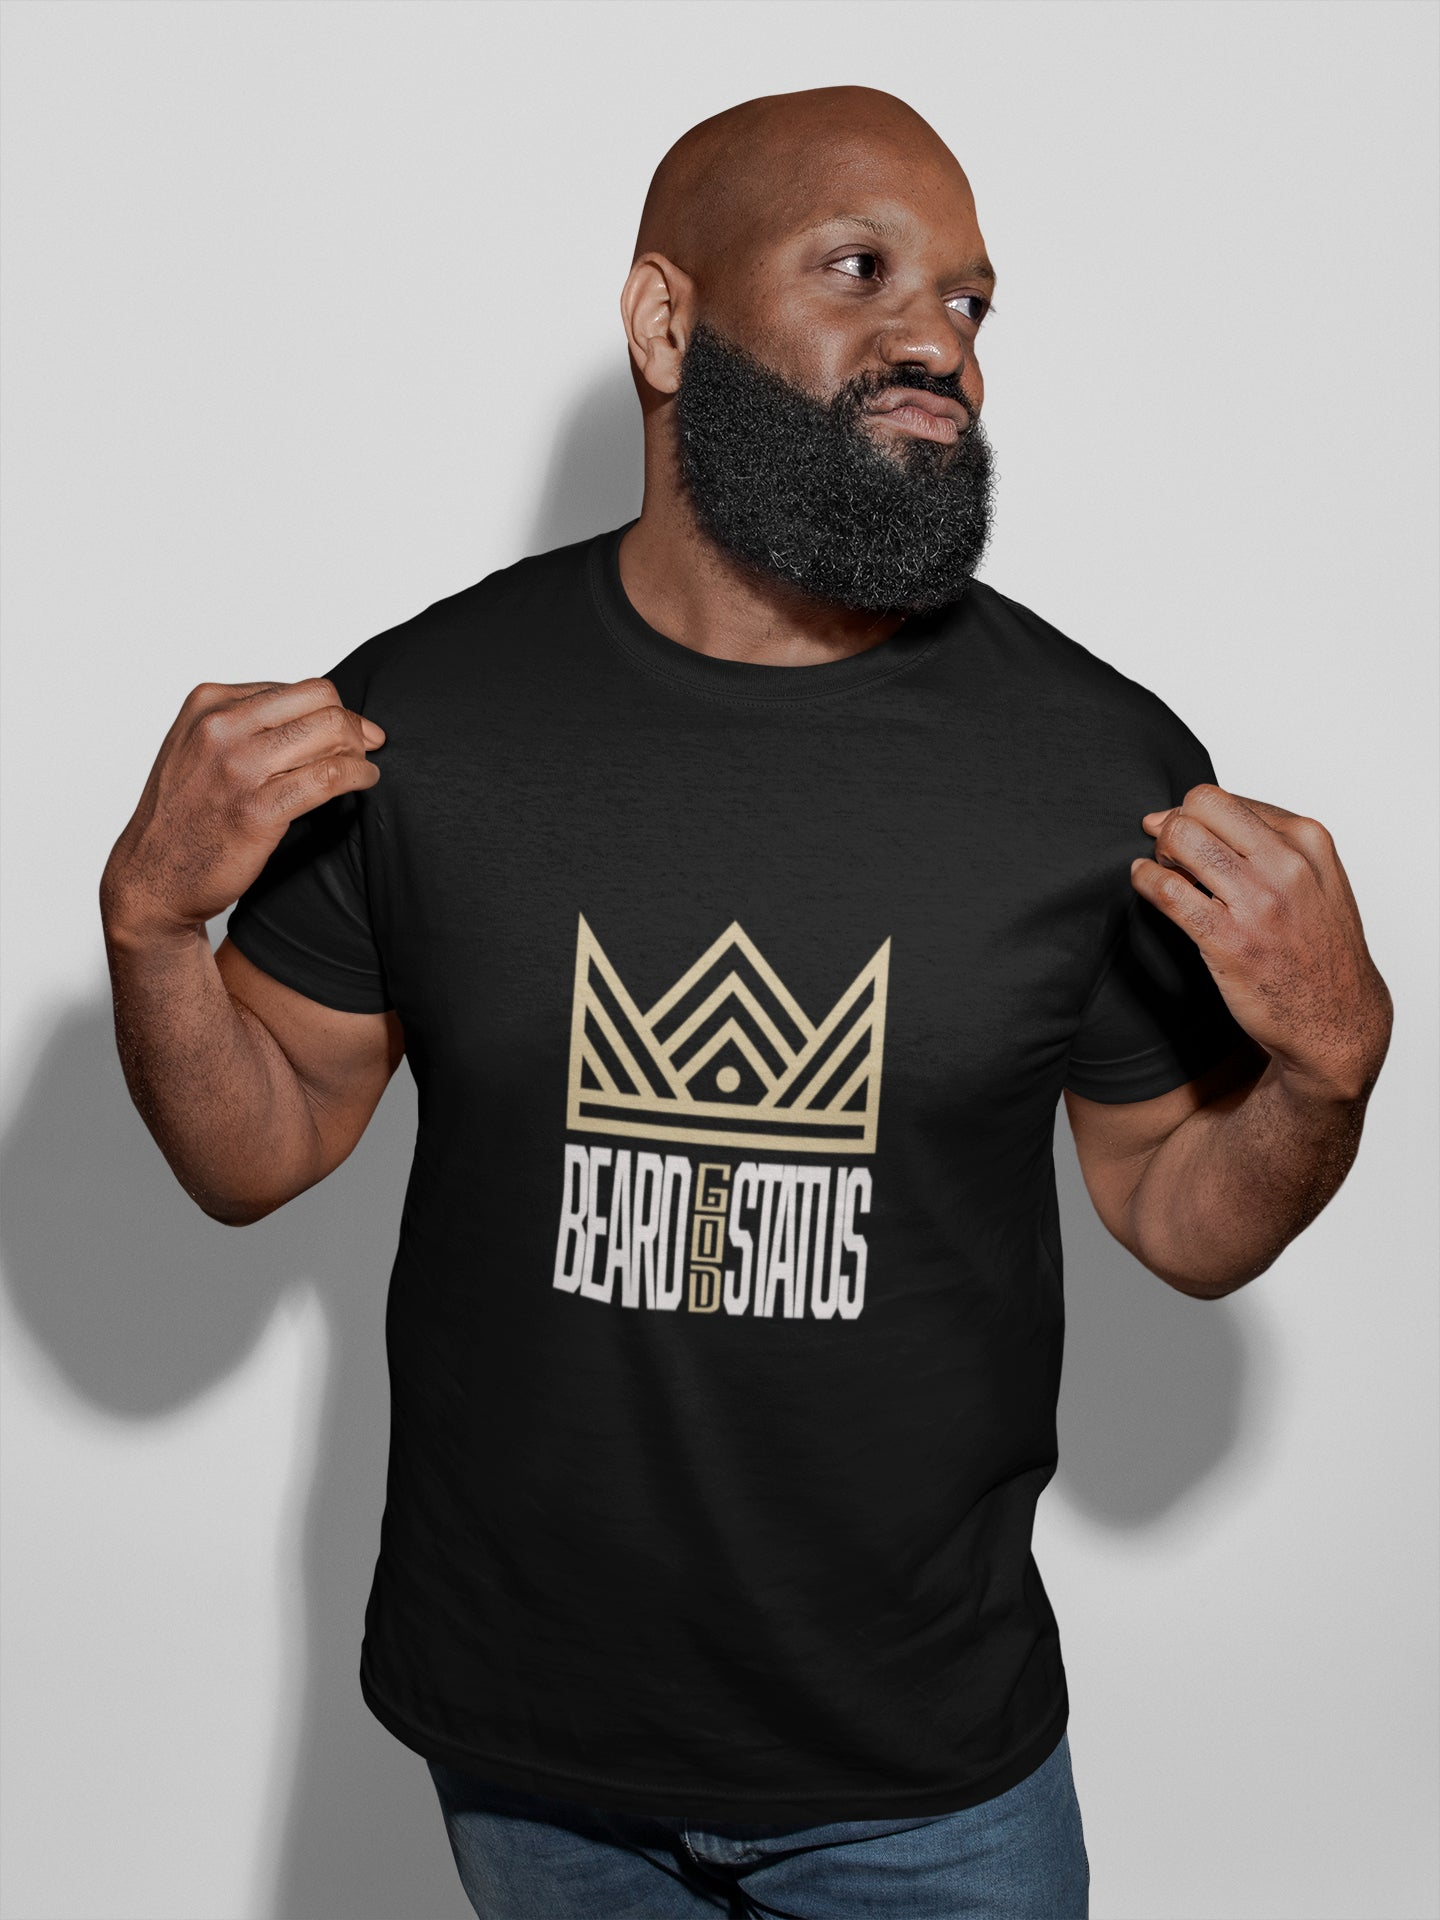 Beard God Status Tee - Angie Watts